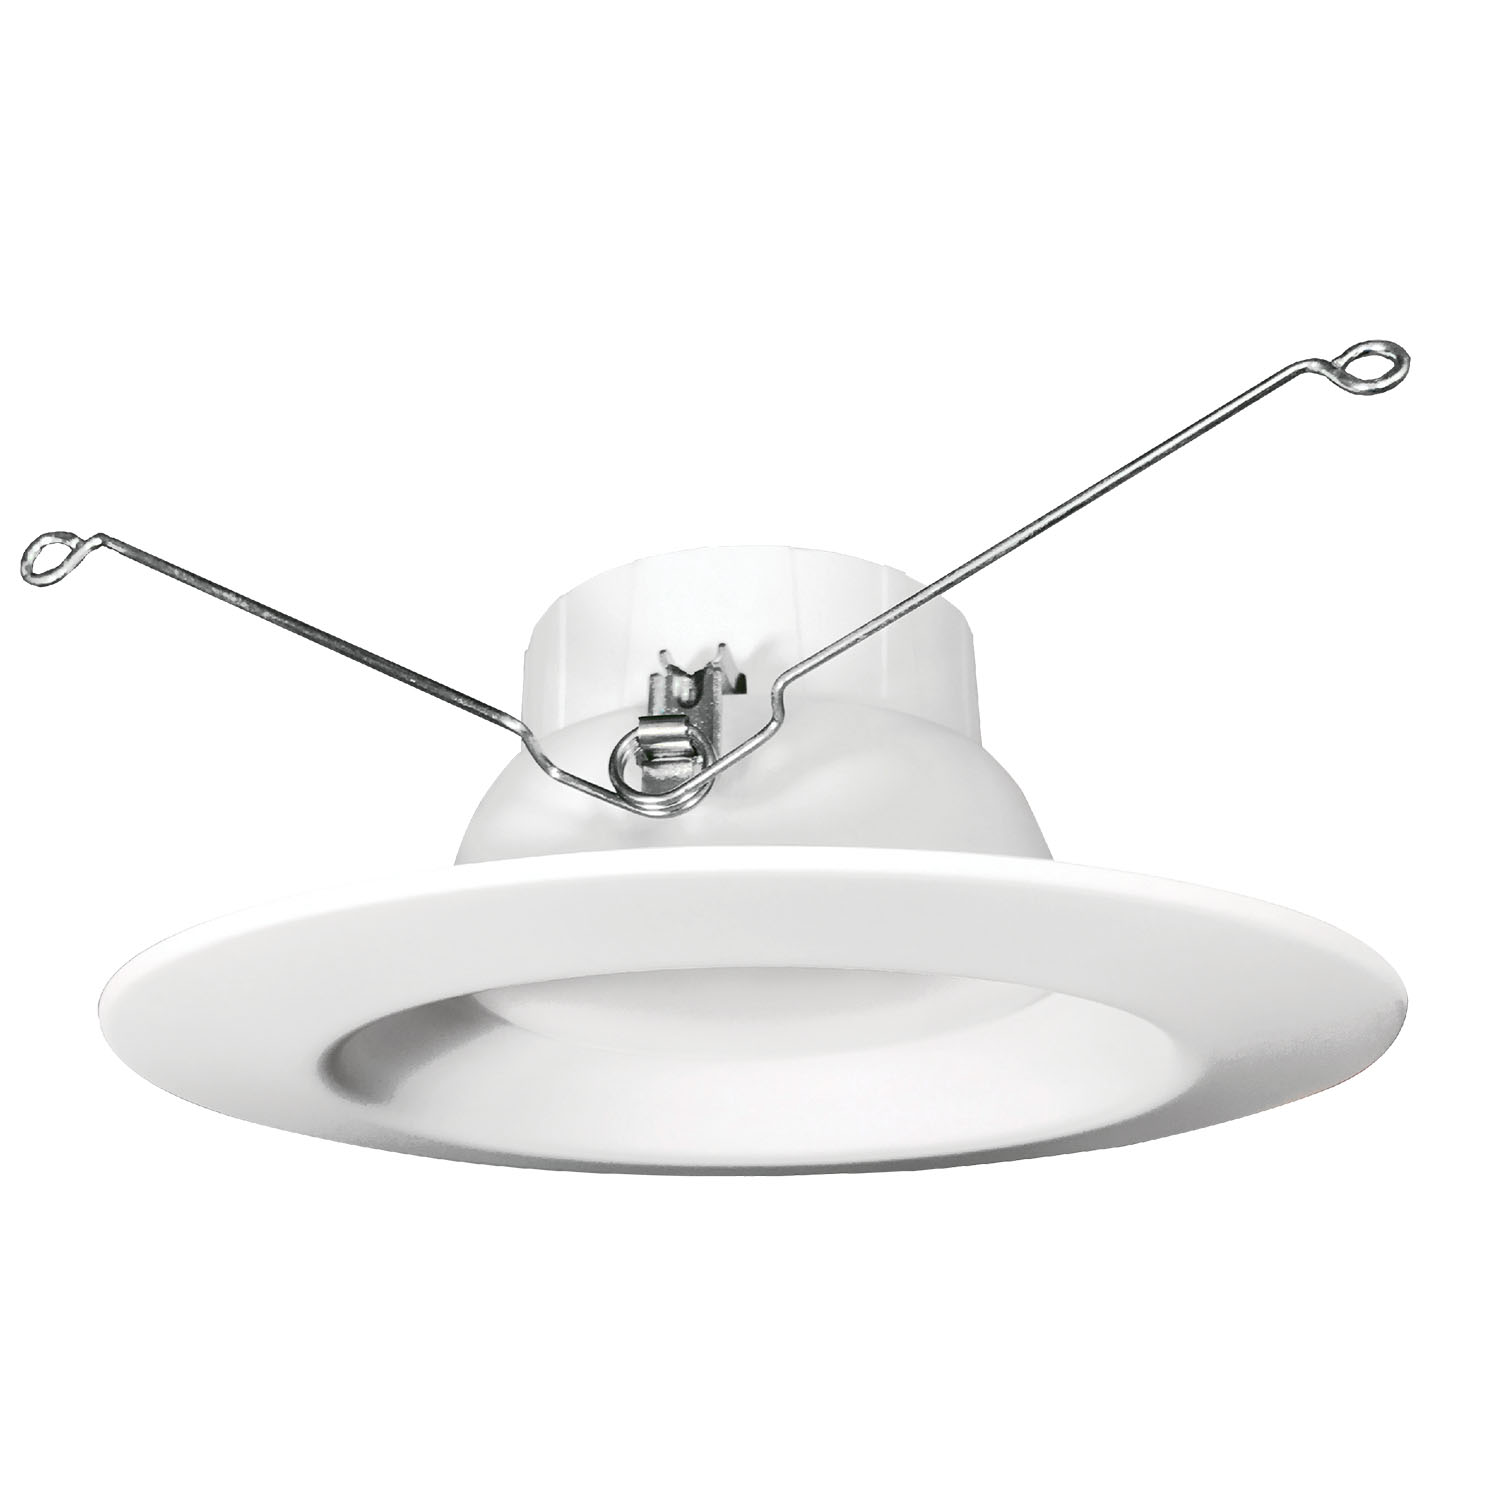 "DL6FR15/930/ECO/LED2 99646 6"" Retrofit Downlight, 15W, 3000K, Dimmable ProLED ECO Series II"